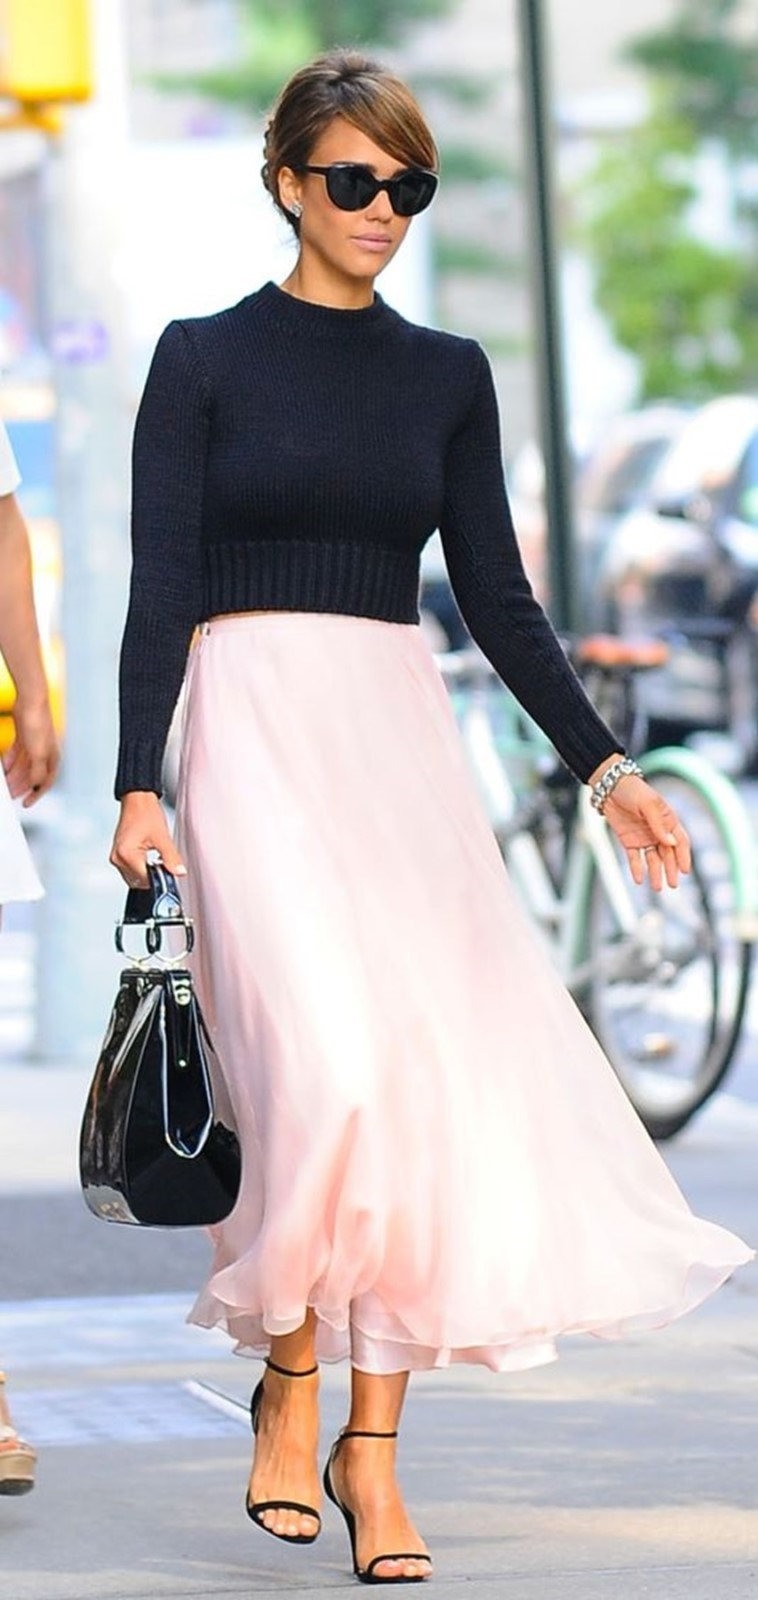 What To Wear On A Date: 30+ Outfit Ideas